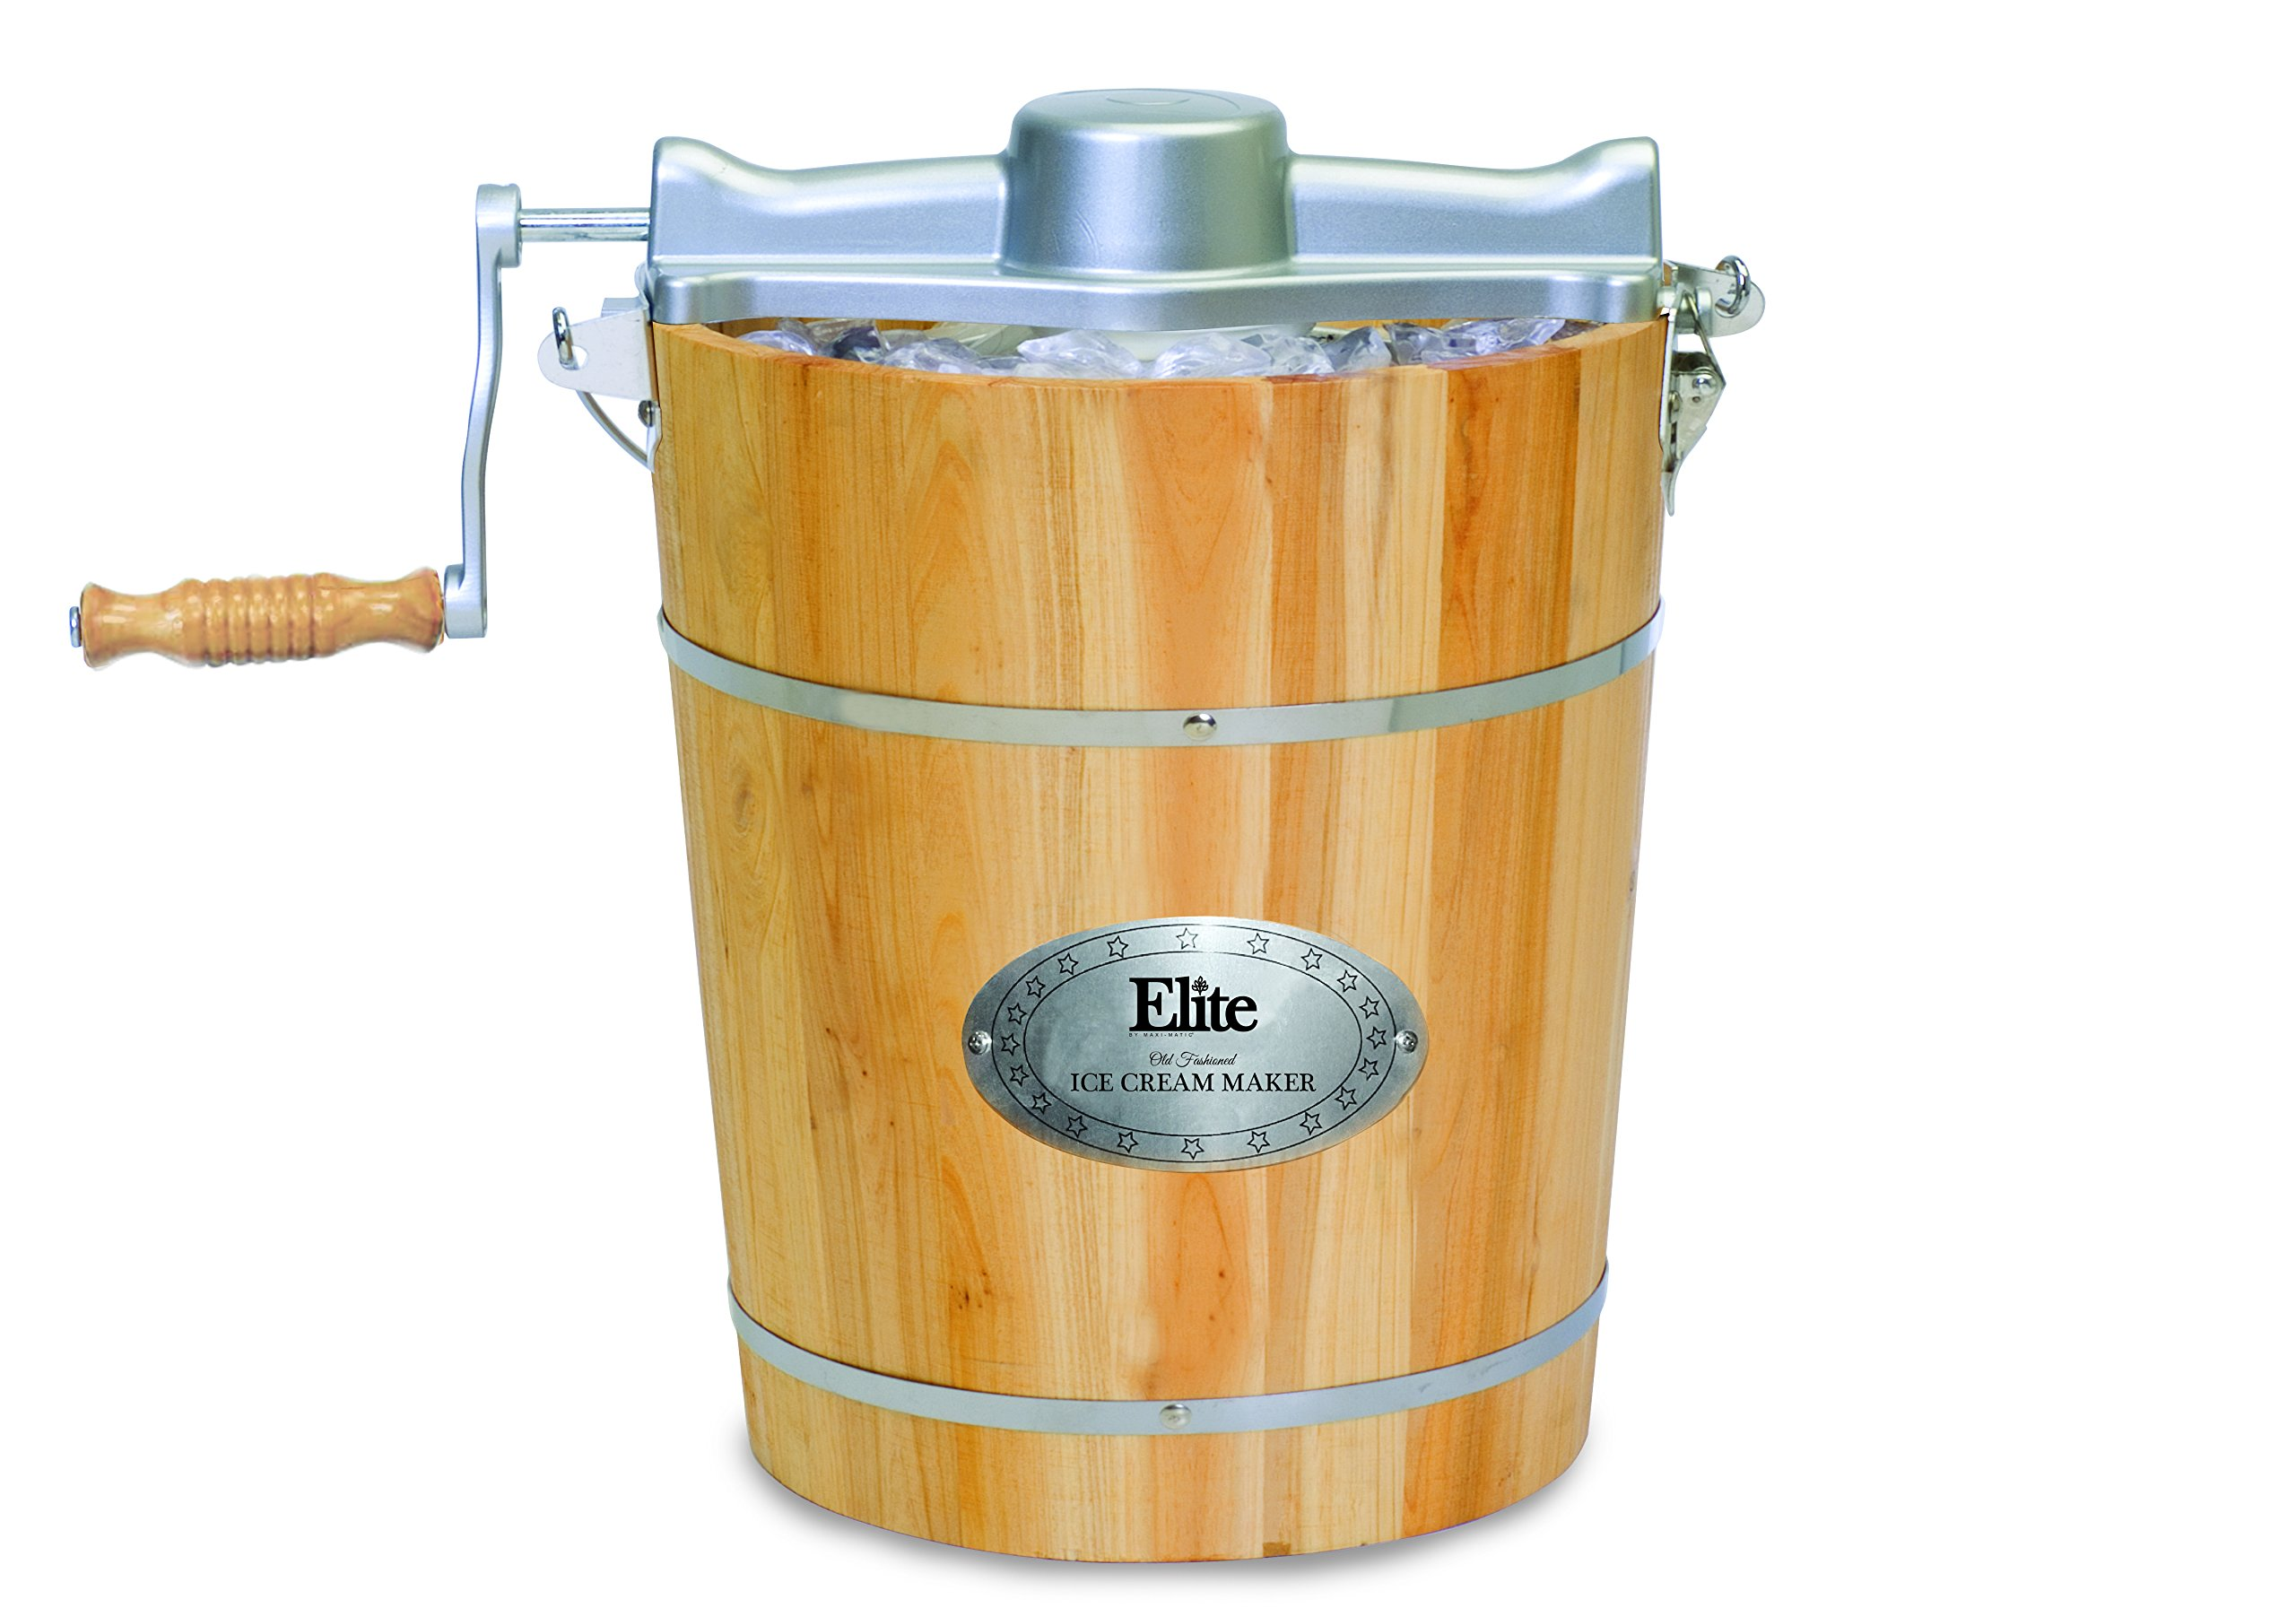 Elite Gourmet EIM-502 4 quart Old-Fashioned Ice Cream Maker with electric motor and hand crank, maple by Maxi-Matic (Image #2)